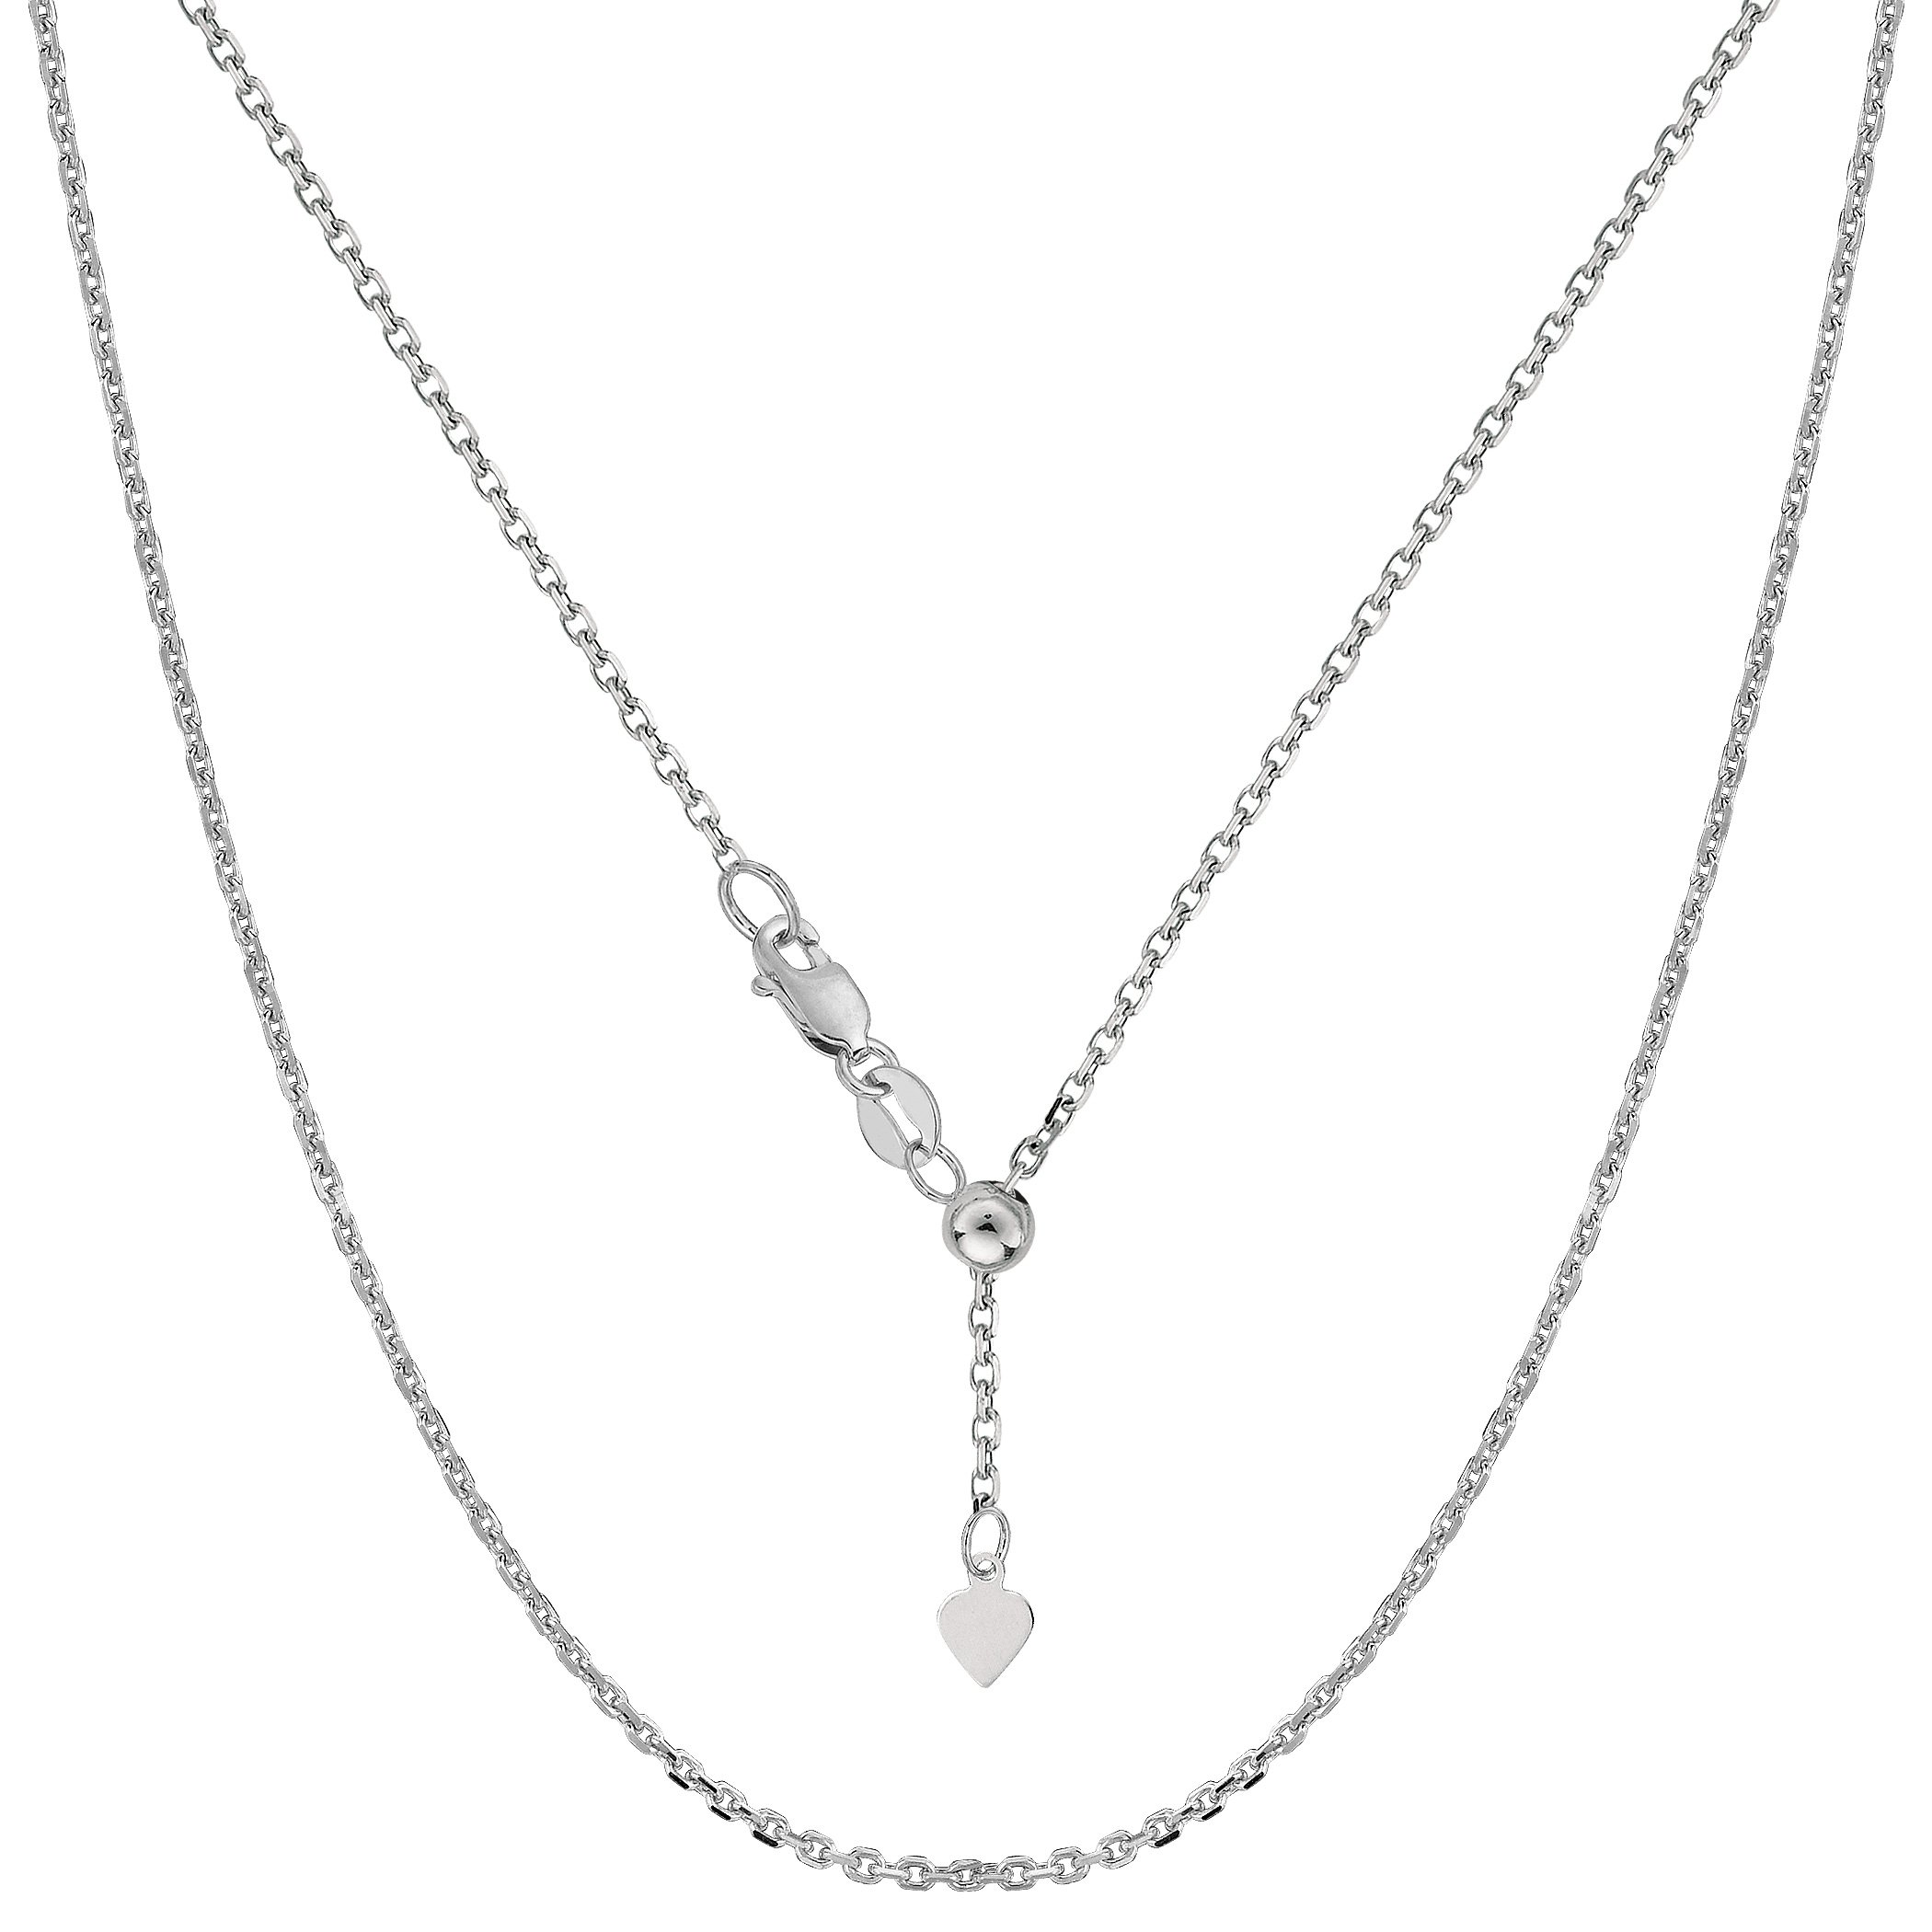 10k White Gold Adjustable Cable Link Chain Necklace, 0.9mm, 22''